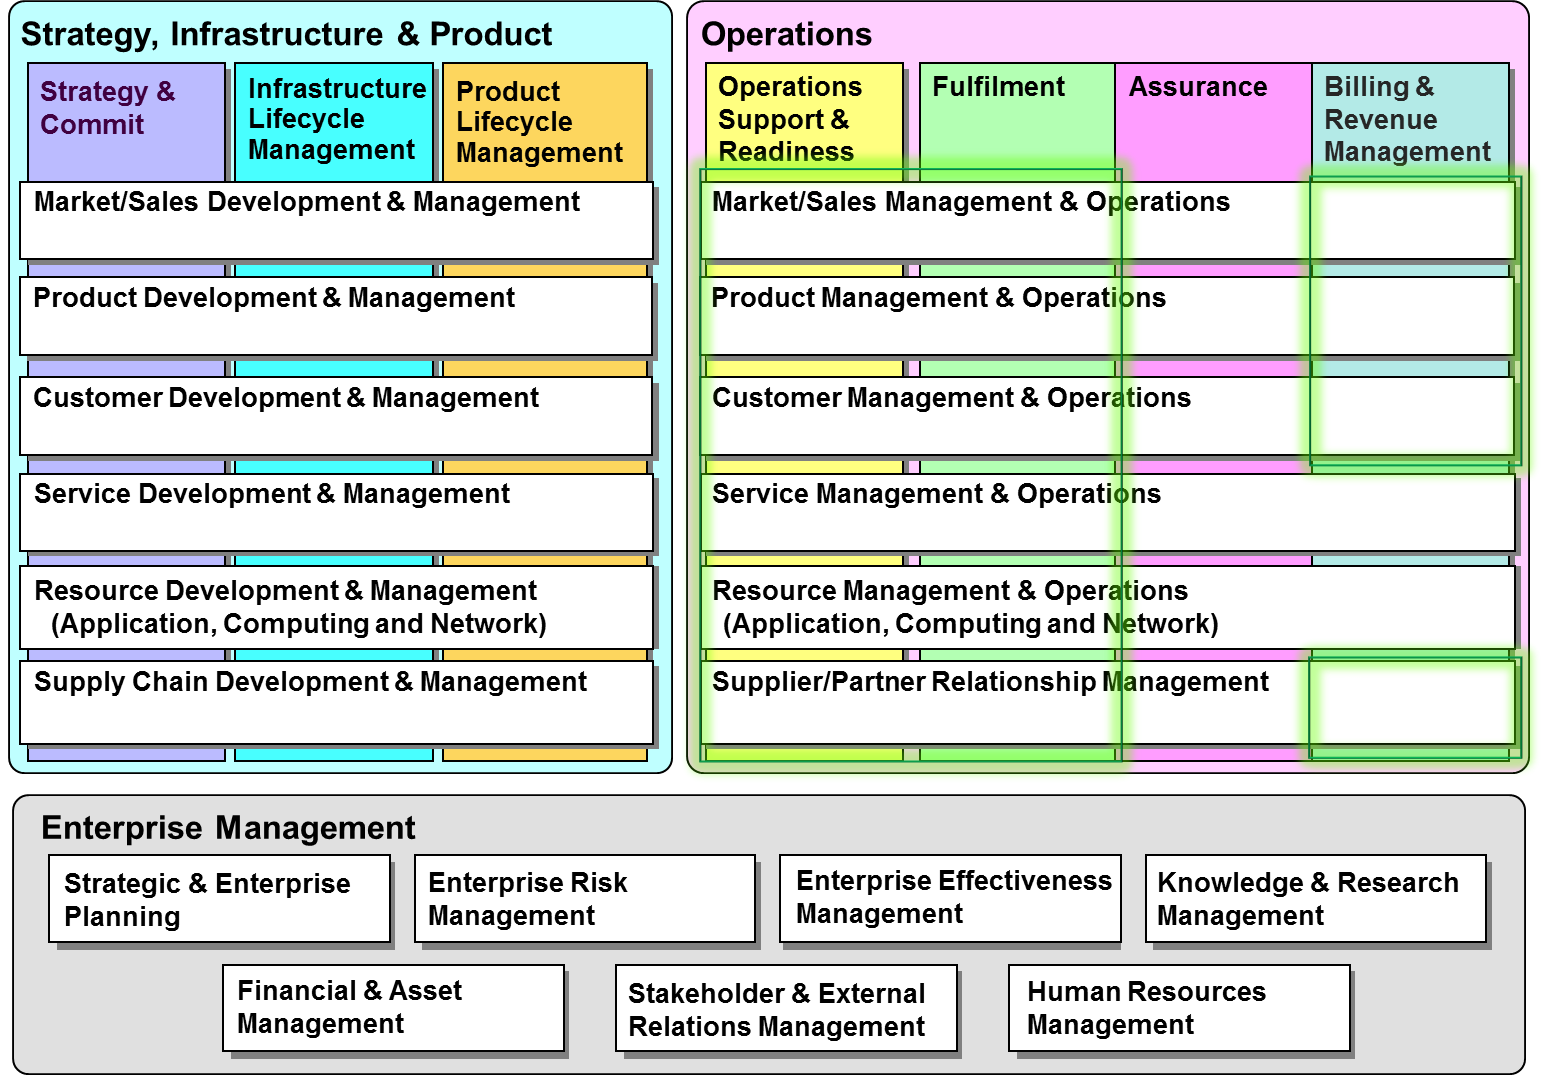 Business Capability Map Visio Template A Will Have Unique Underlying Power Bi Then Automatically February Acts Decision Making Tool Prioritizing